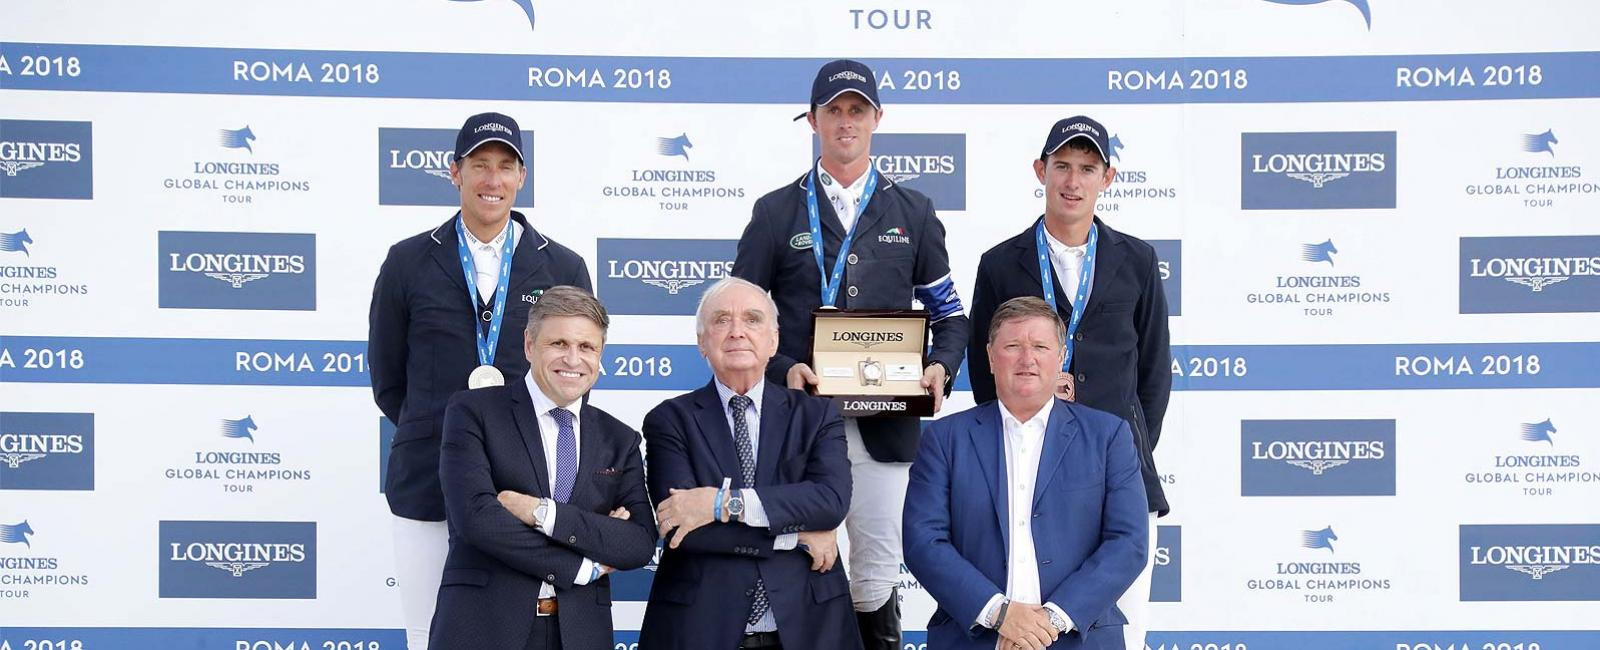 Longines Global Champions Tour; Roma; 2018; Jumping